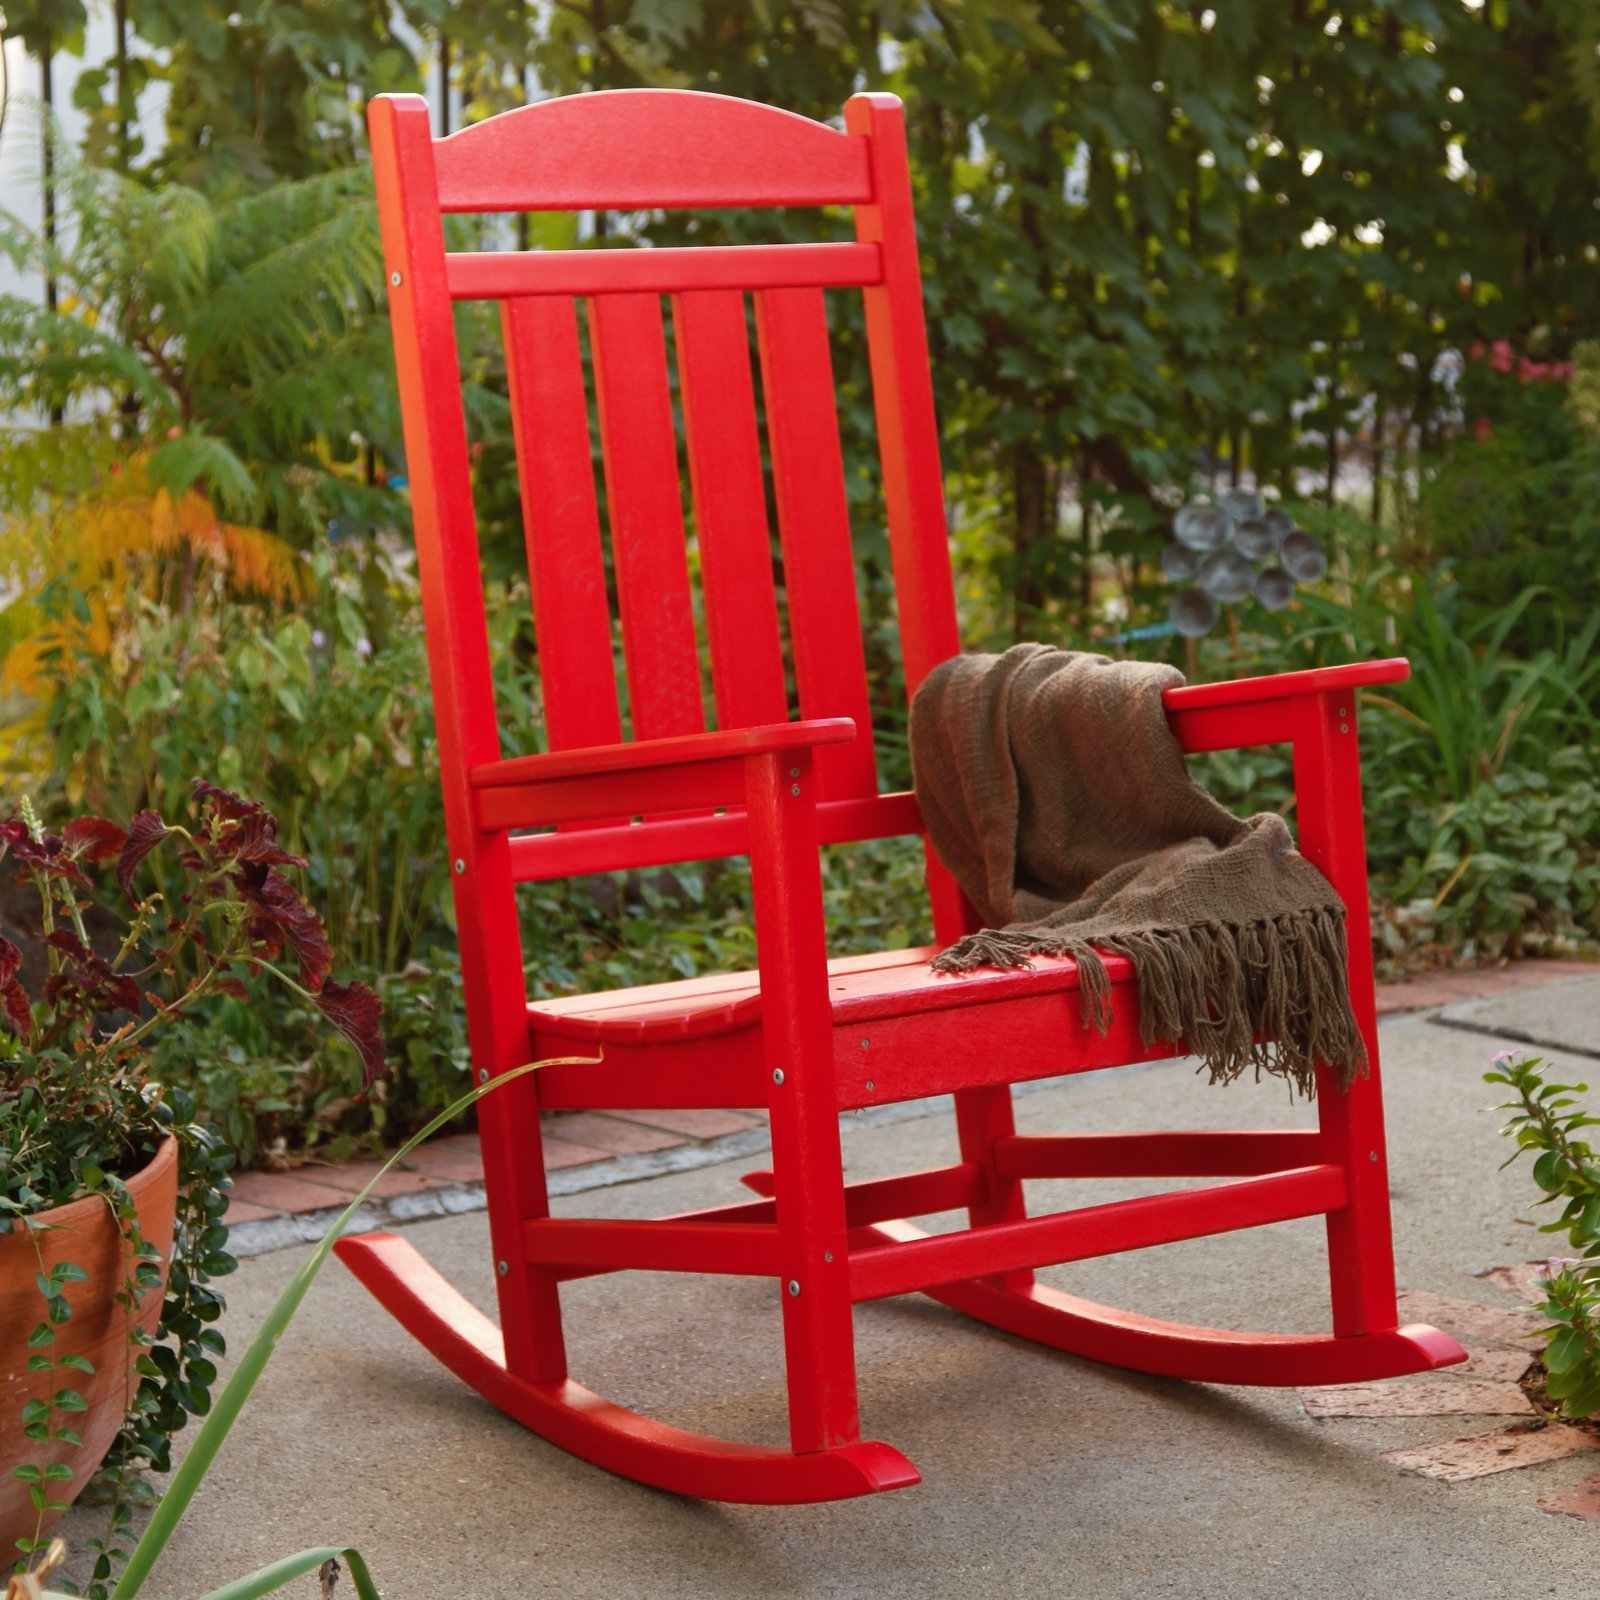 Widely Used Red Patio Rocking Chairs For Polywood® Presidential Recycled Plastic Rocking Chair – Walmart (View 6 of 15)